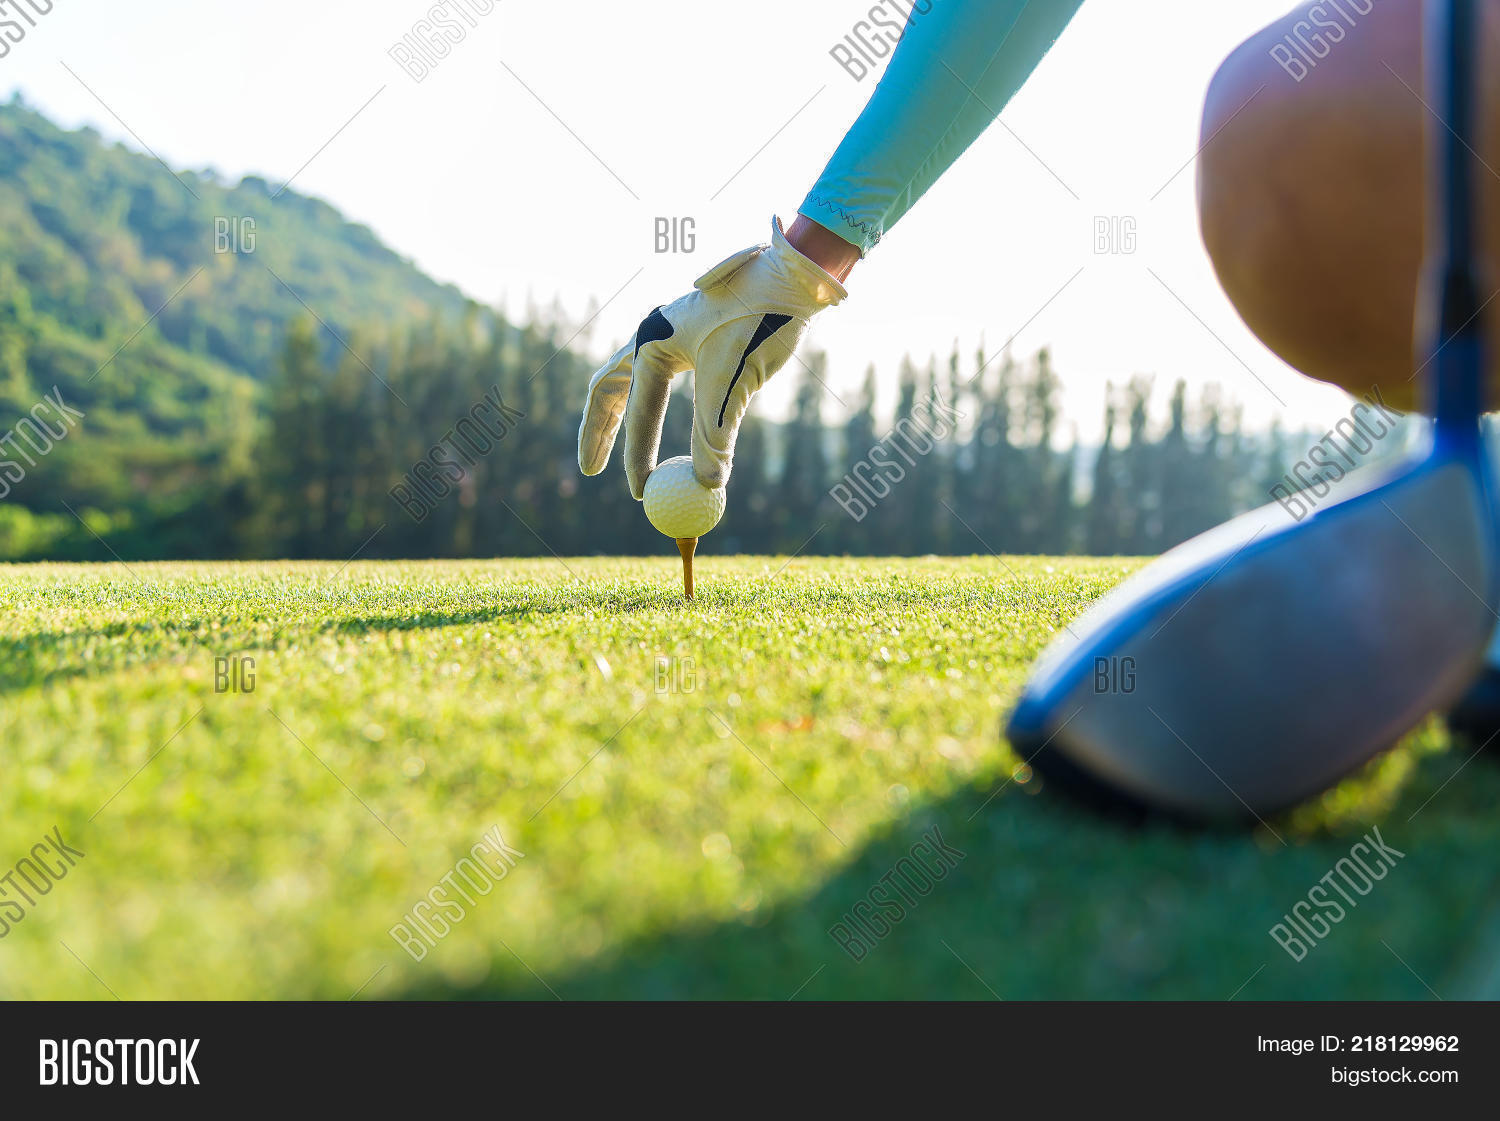 apron,backswing,birdie,blade,bogey,bunker,caddie,chip,course,divot,dog-leg,draw,eagle,fade,fairway,field,flagstick,fluffing,fore,forest,golf,golfer,grass,green,grip,ground,handicap,iron,knees,loft,meadow,par,pitch,plane,play,player,pull,rough,round,shank,shoe,slice,square,stroke,sun,swing,tee,teeing,top,wood